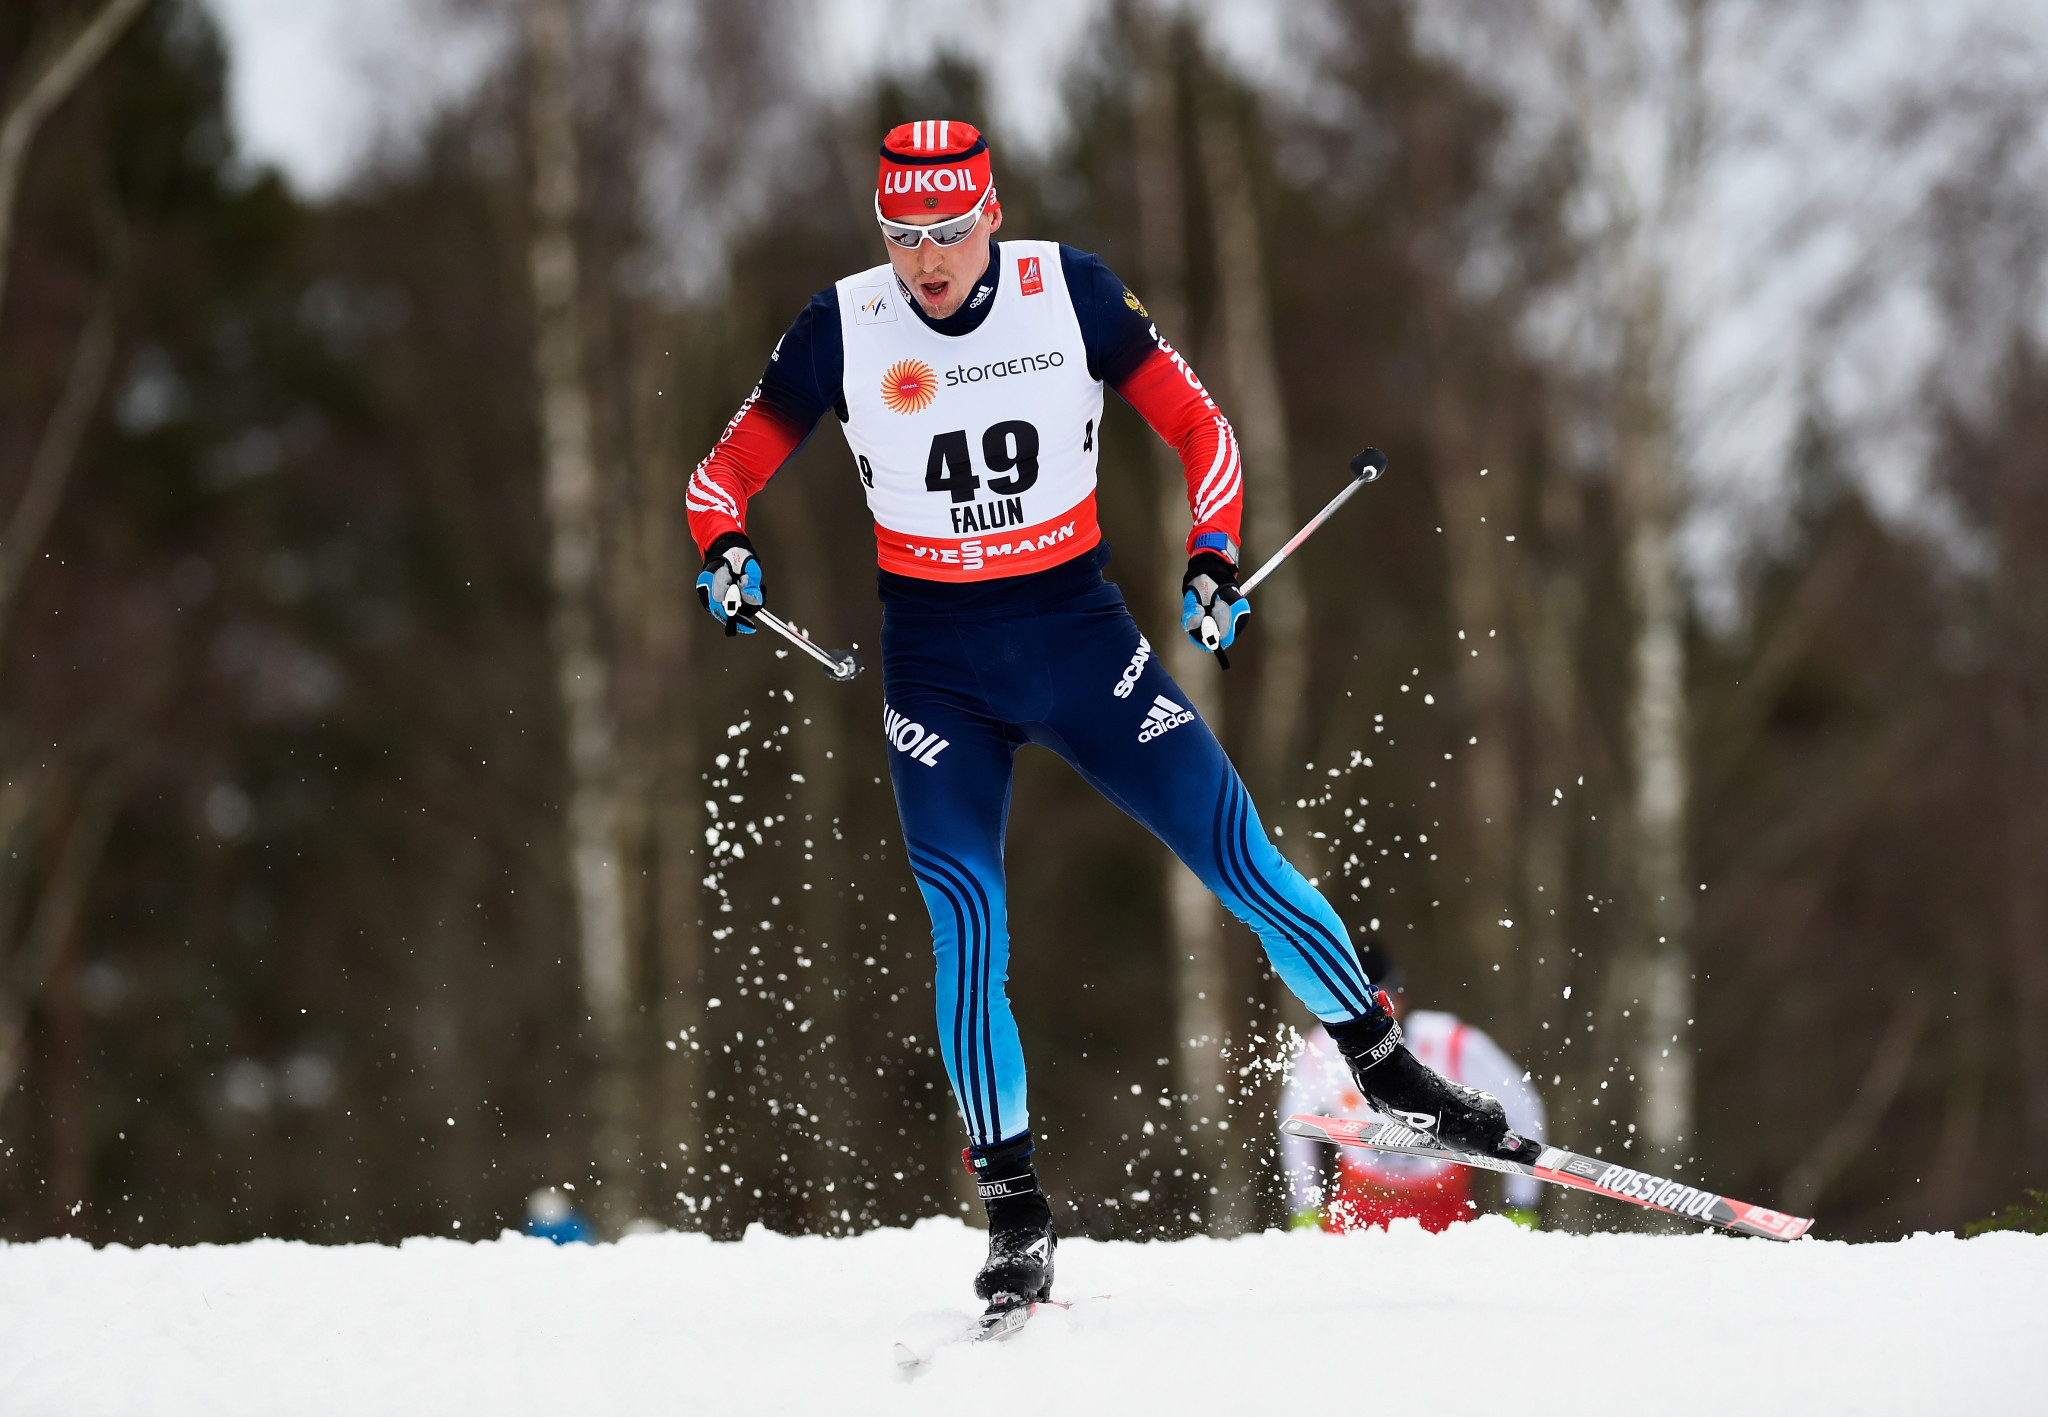 The lawyer of cross-country skier Alexander Legkov has written a 35-page paper entitled